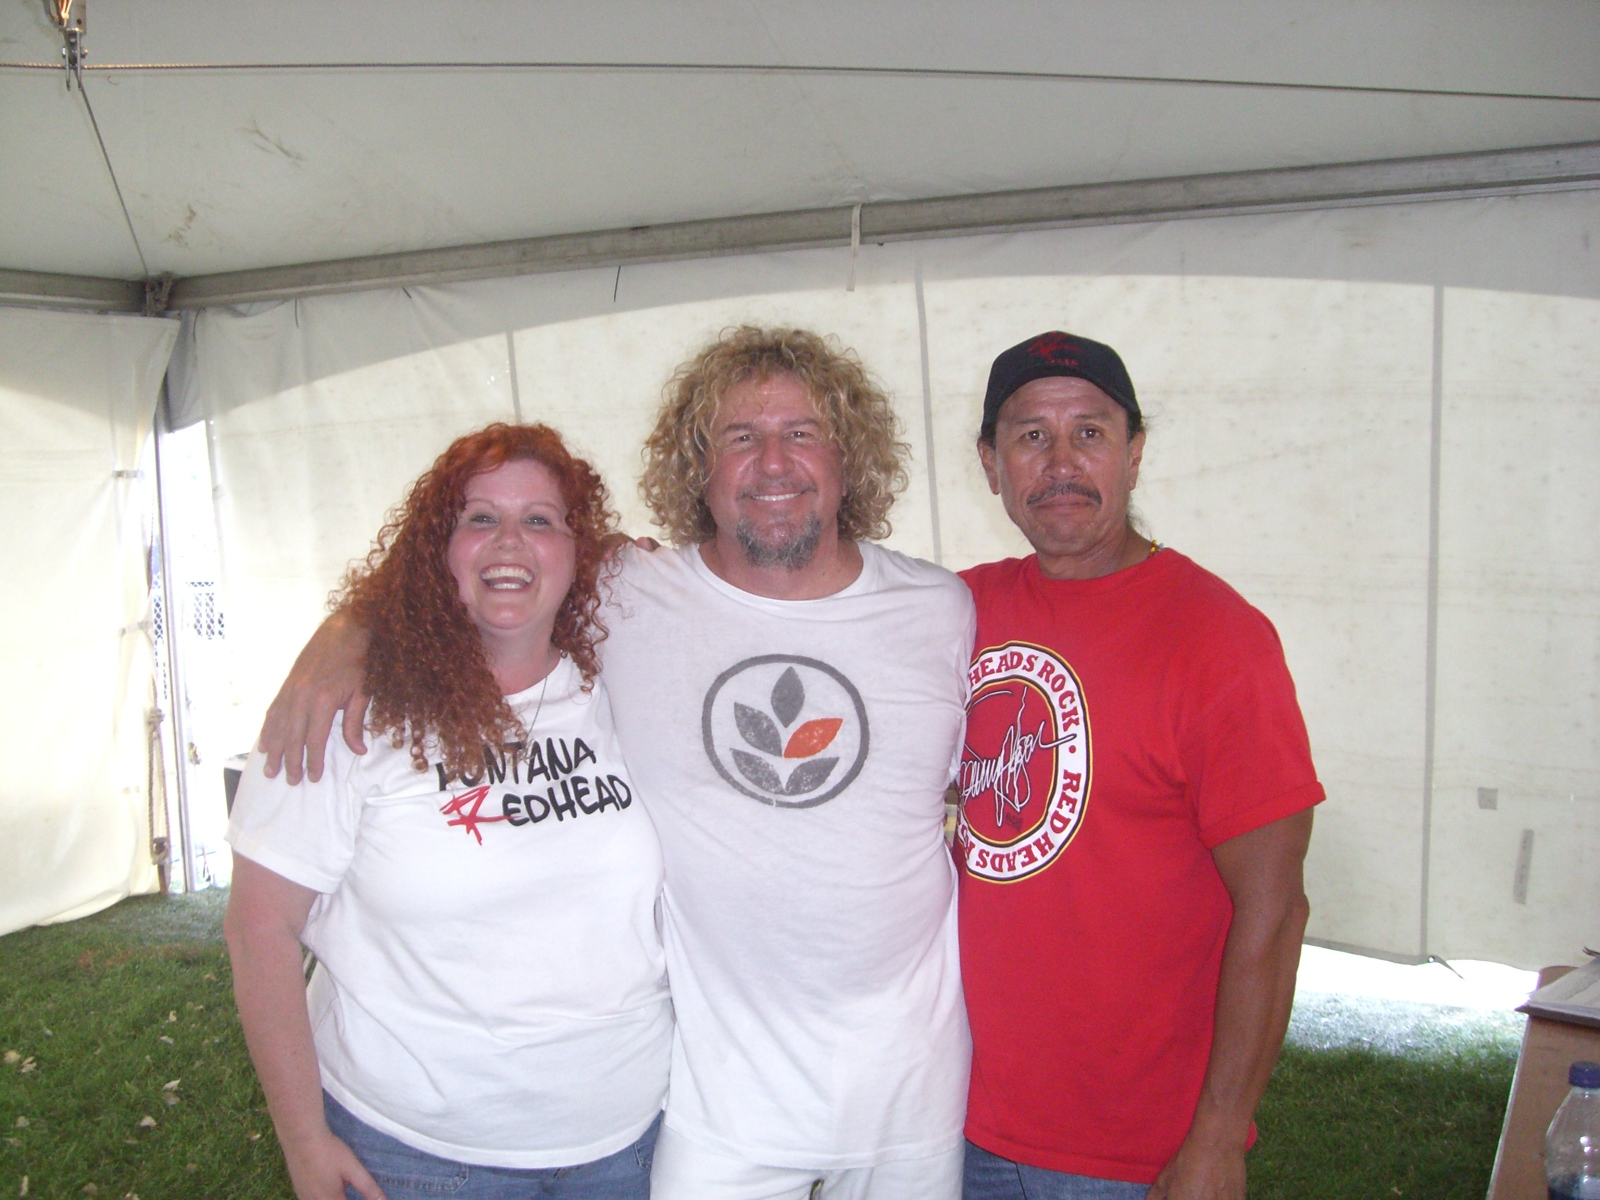 Meet and greet winner nat junie lopez jr sammy hagar the red meet and greet winner nat junie lopez jr kristyandbryce Choice Image